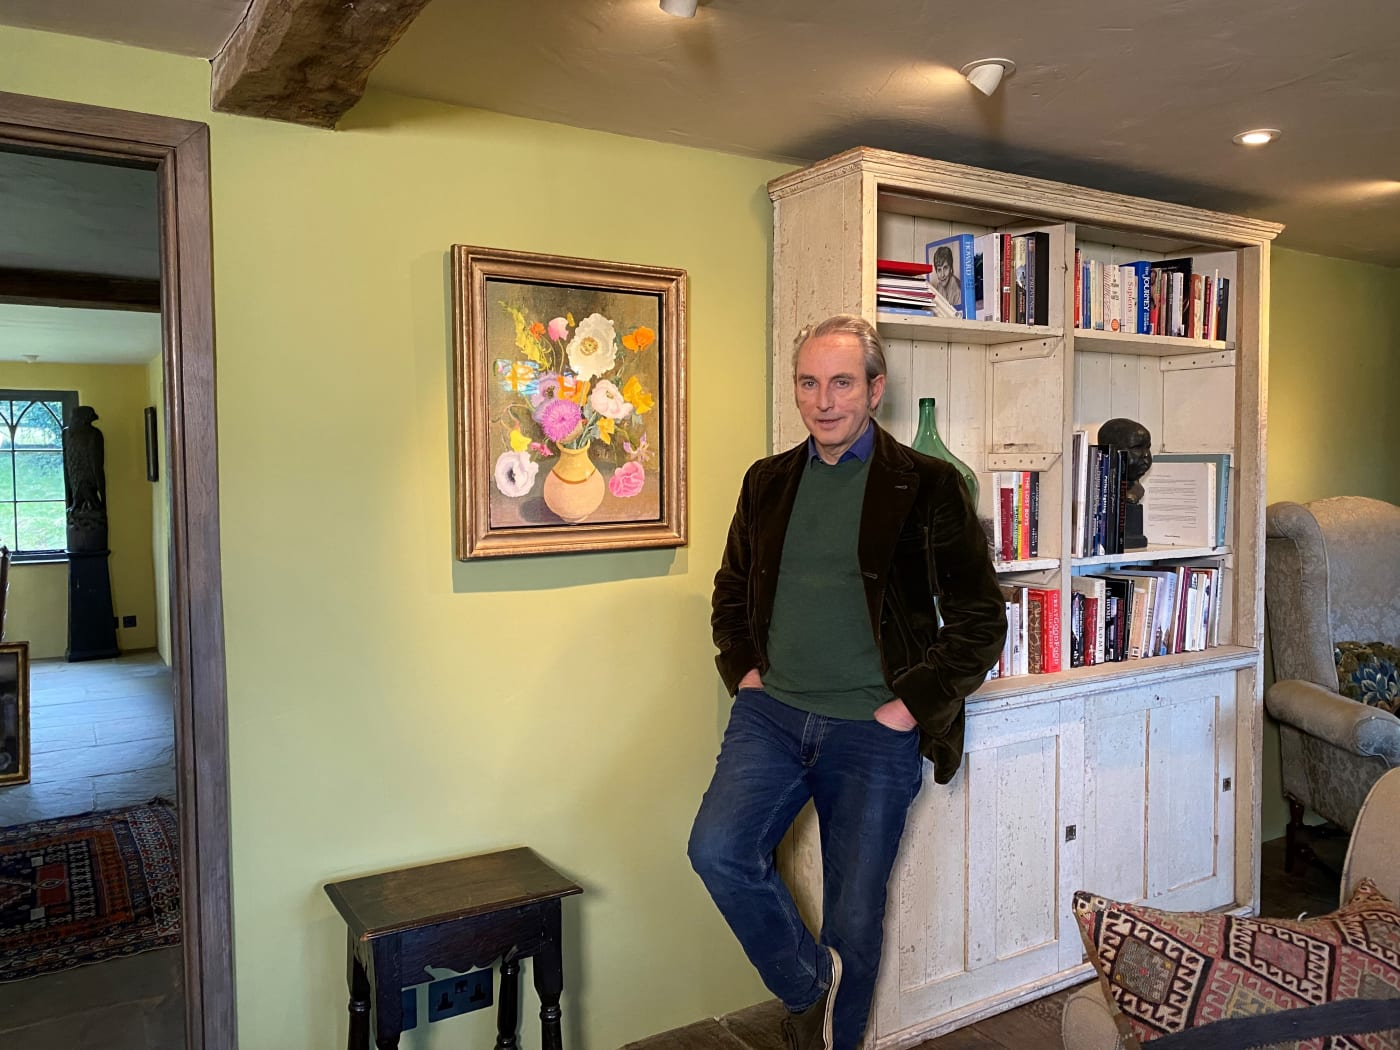 Philip Mould Art in Isolation